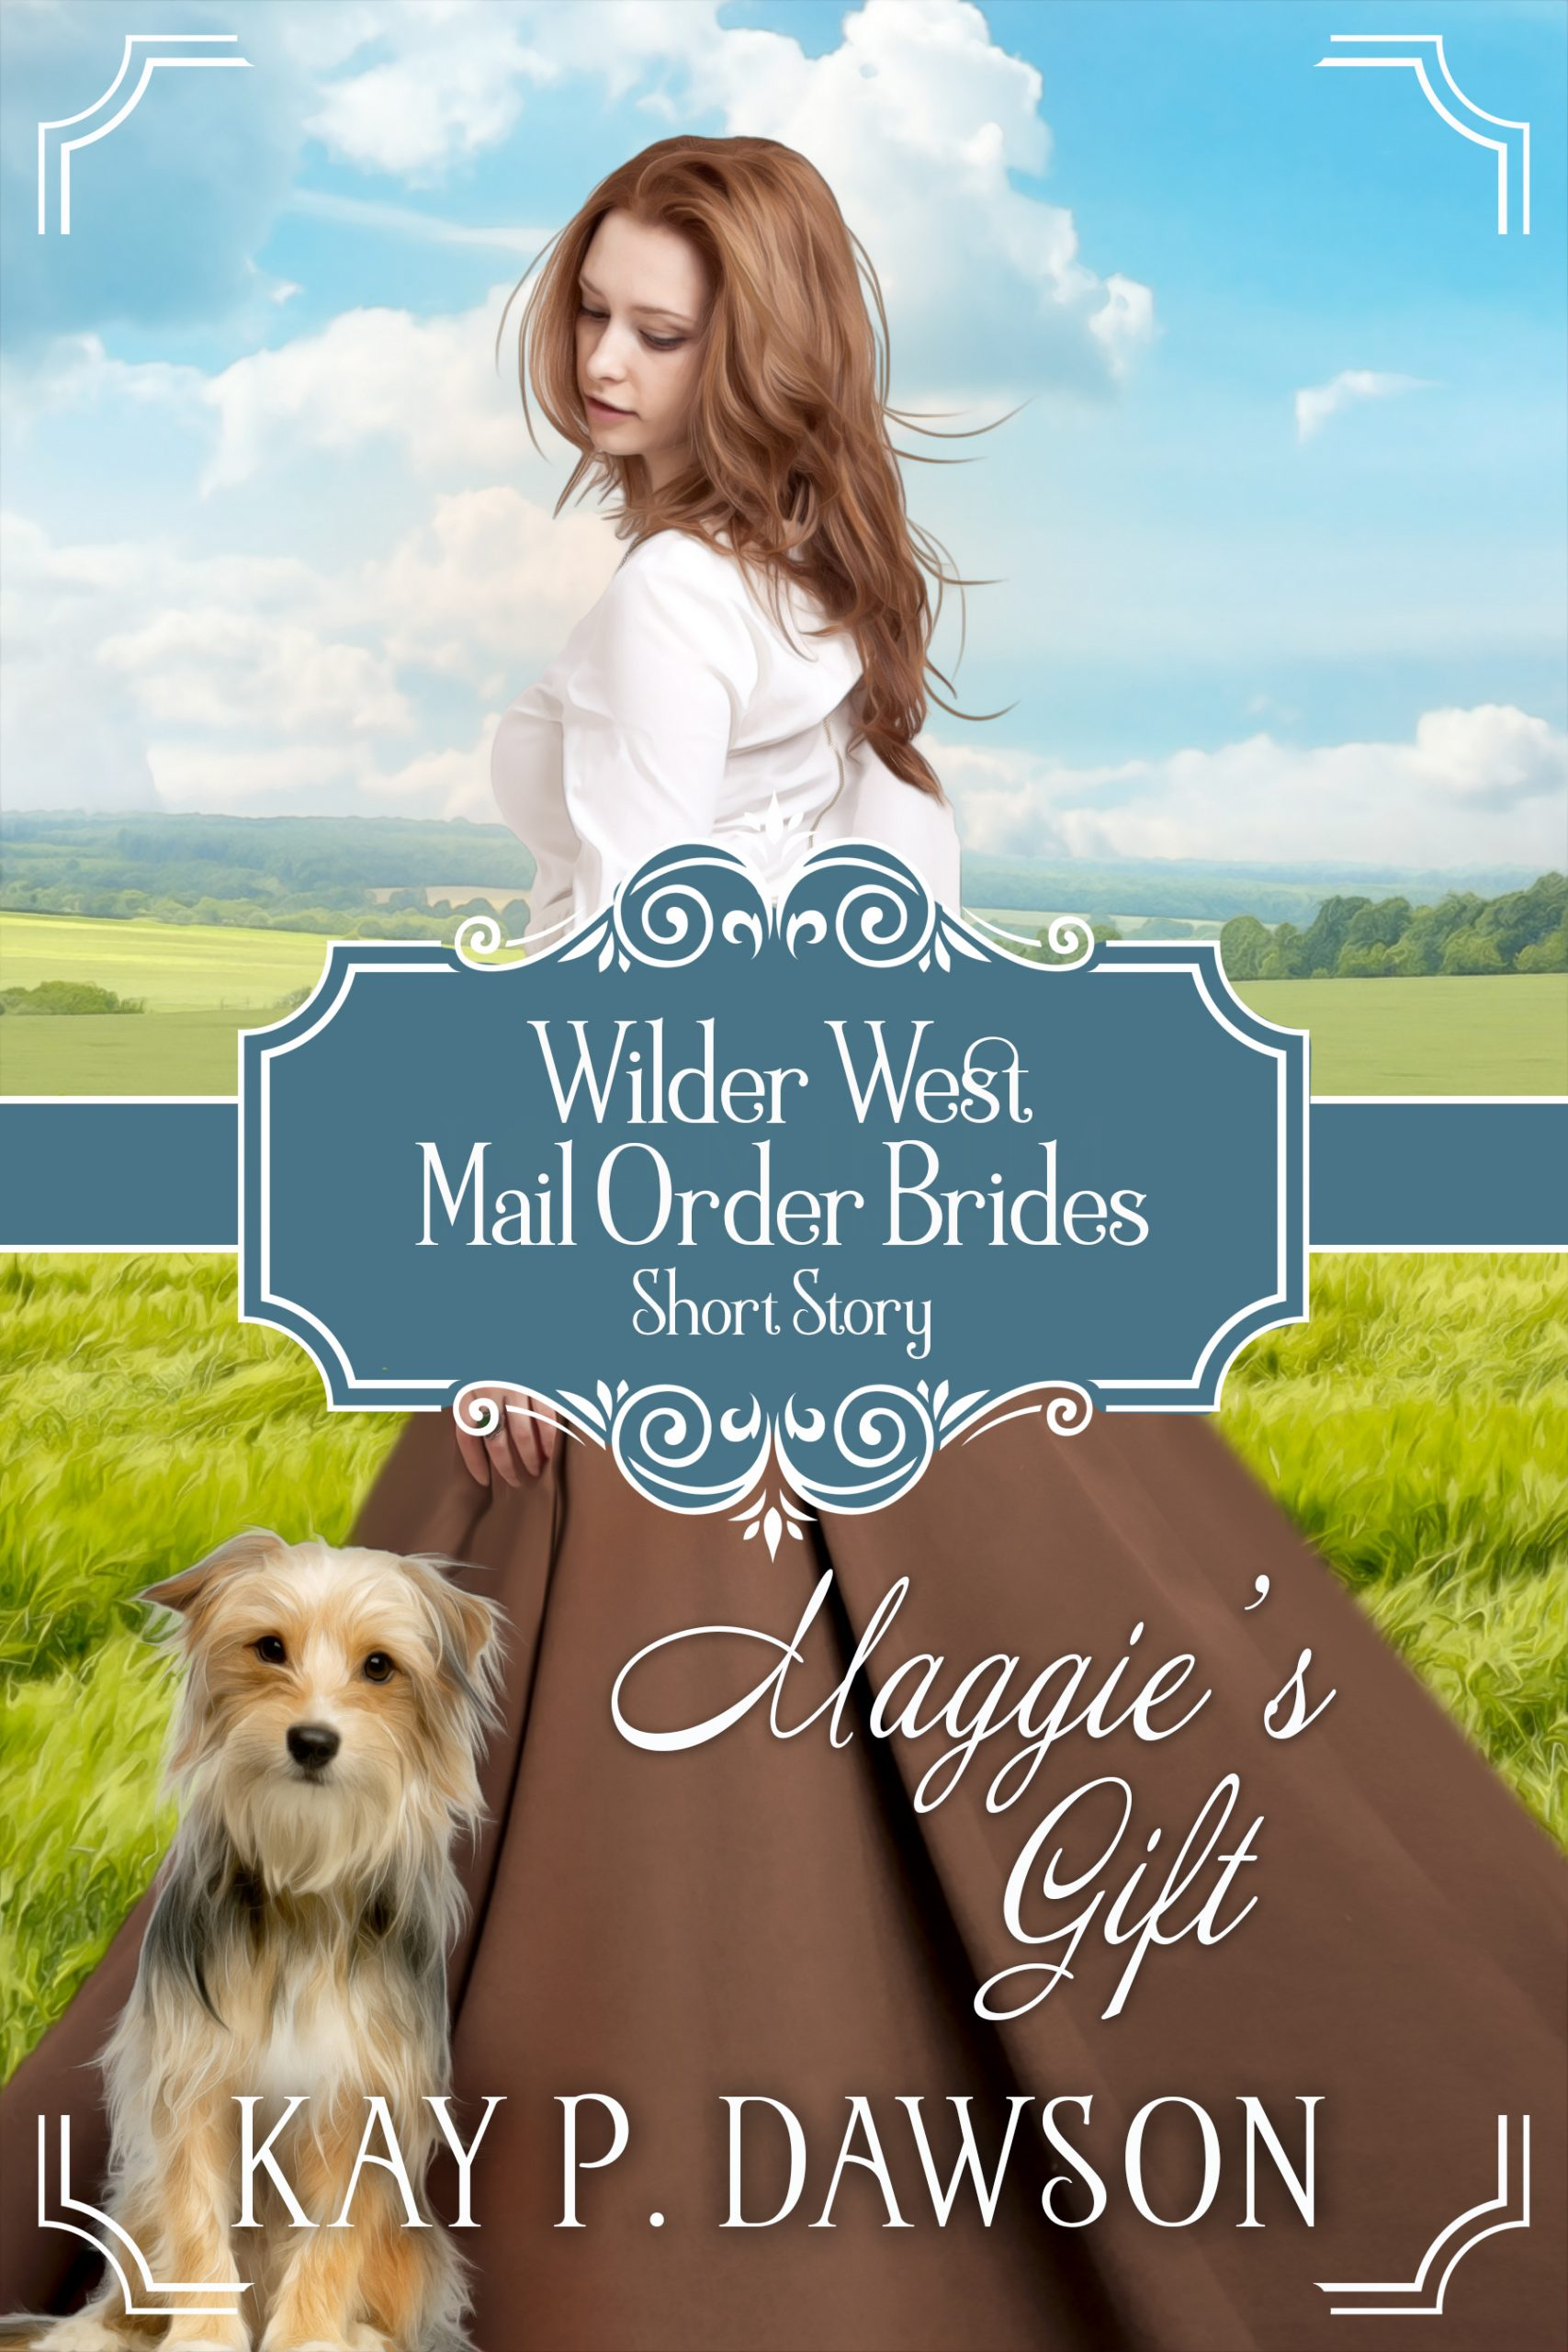 Maggie's Gift - Wilder West Mail Order Brides Short Story